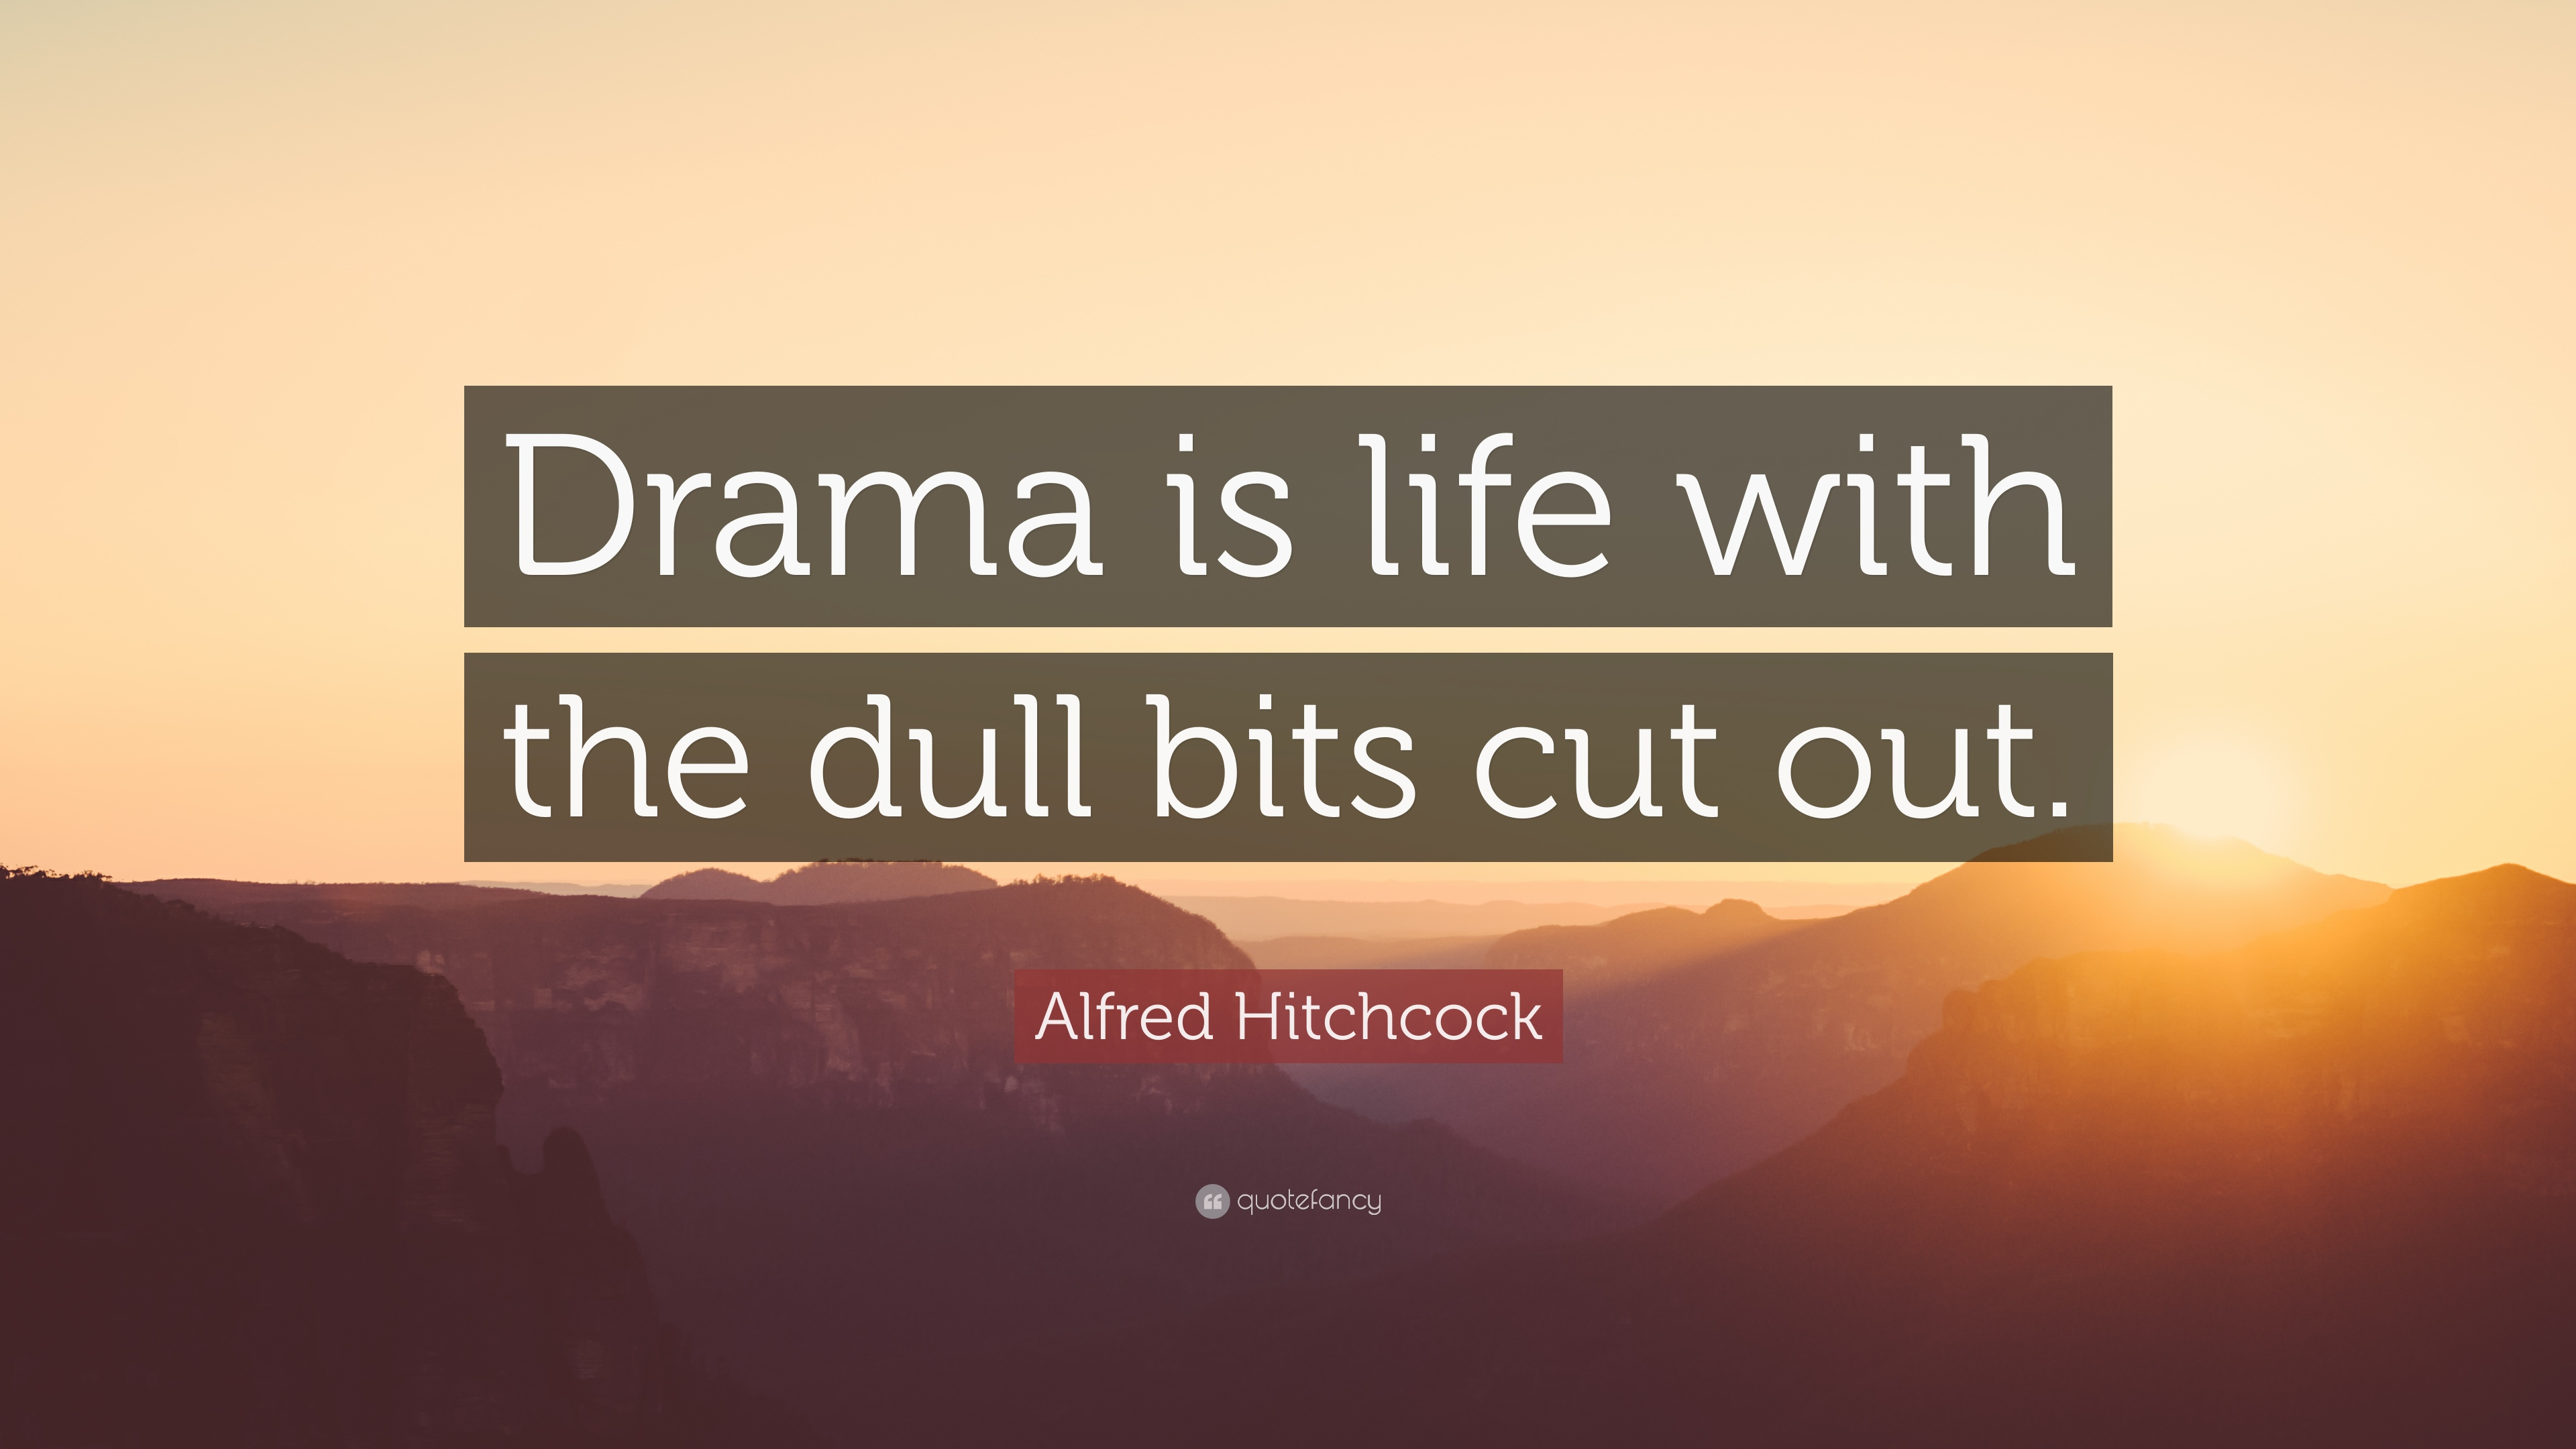 Drama Quotes About Life: Life Is Short Quotes (40 Wallpapers)